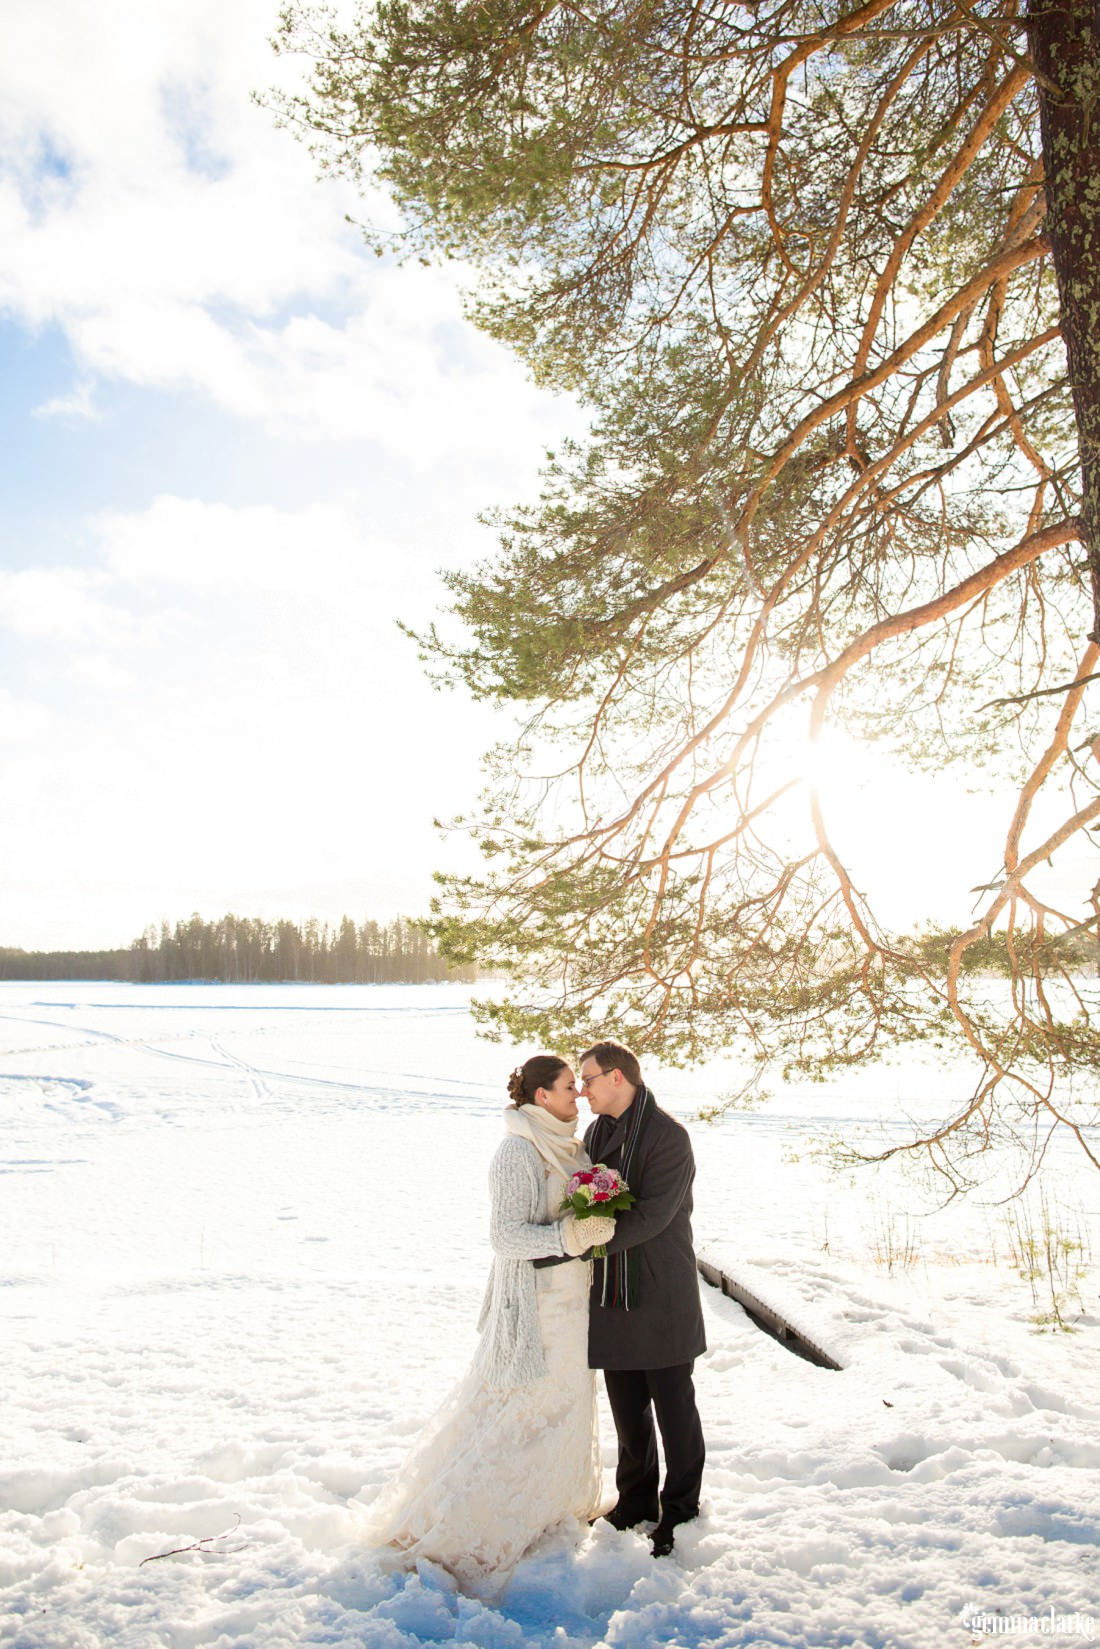 A bride and groom share an eskimo kiss as they stand in front of a snow covered frozen lake